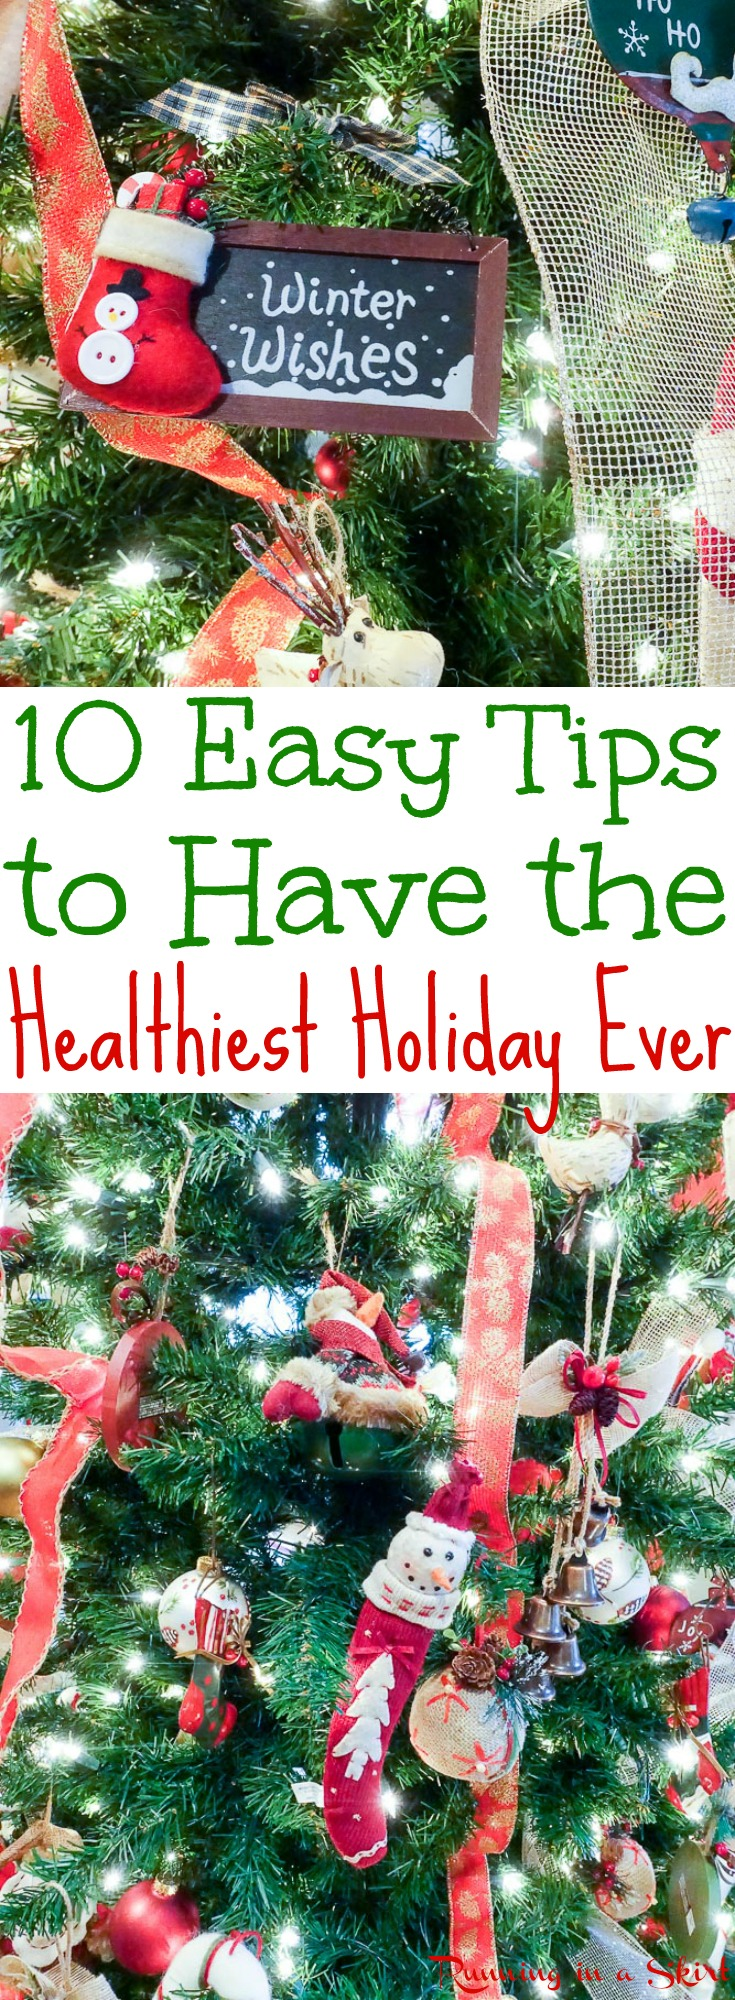 10 Easy Tricks to Have the Healthiest Holiday Ever!  These healthy holiday tips with keep you on track with diet and exercise motivation for Christmas.  Includes food and a workout to get fit and stay in shape. / Running in a Skirt  via @juliewunder